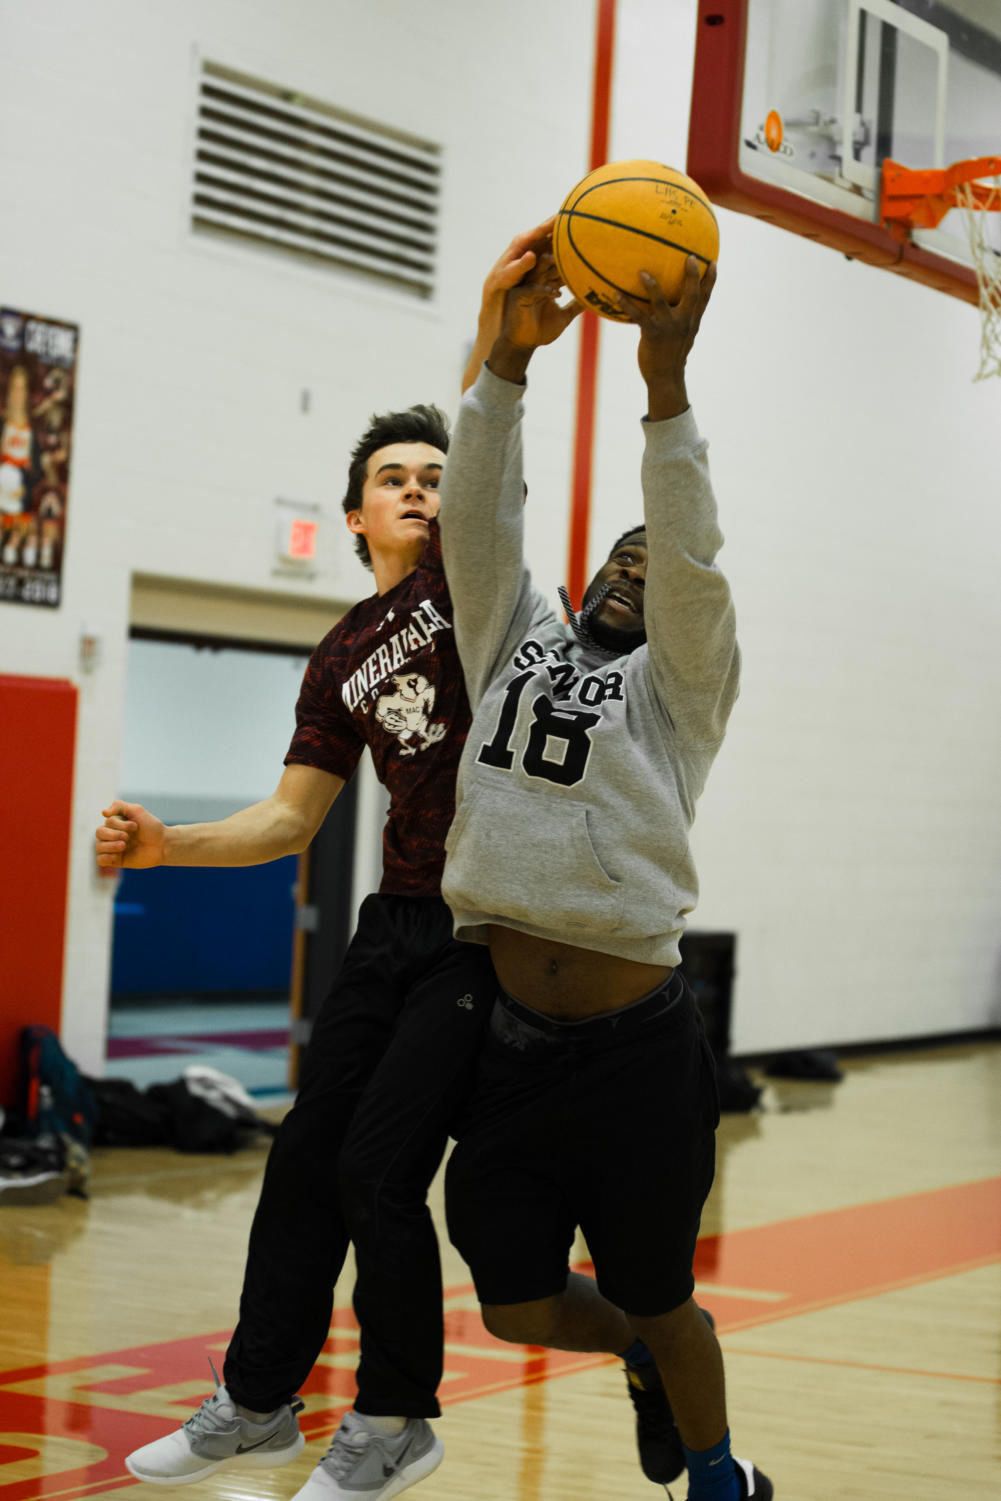 Andrew Fey and Corey Williams play basketball in a P.E. class.